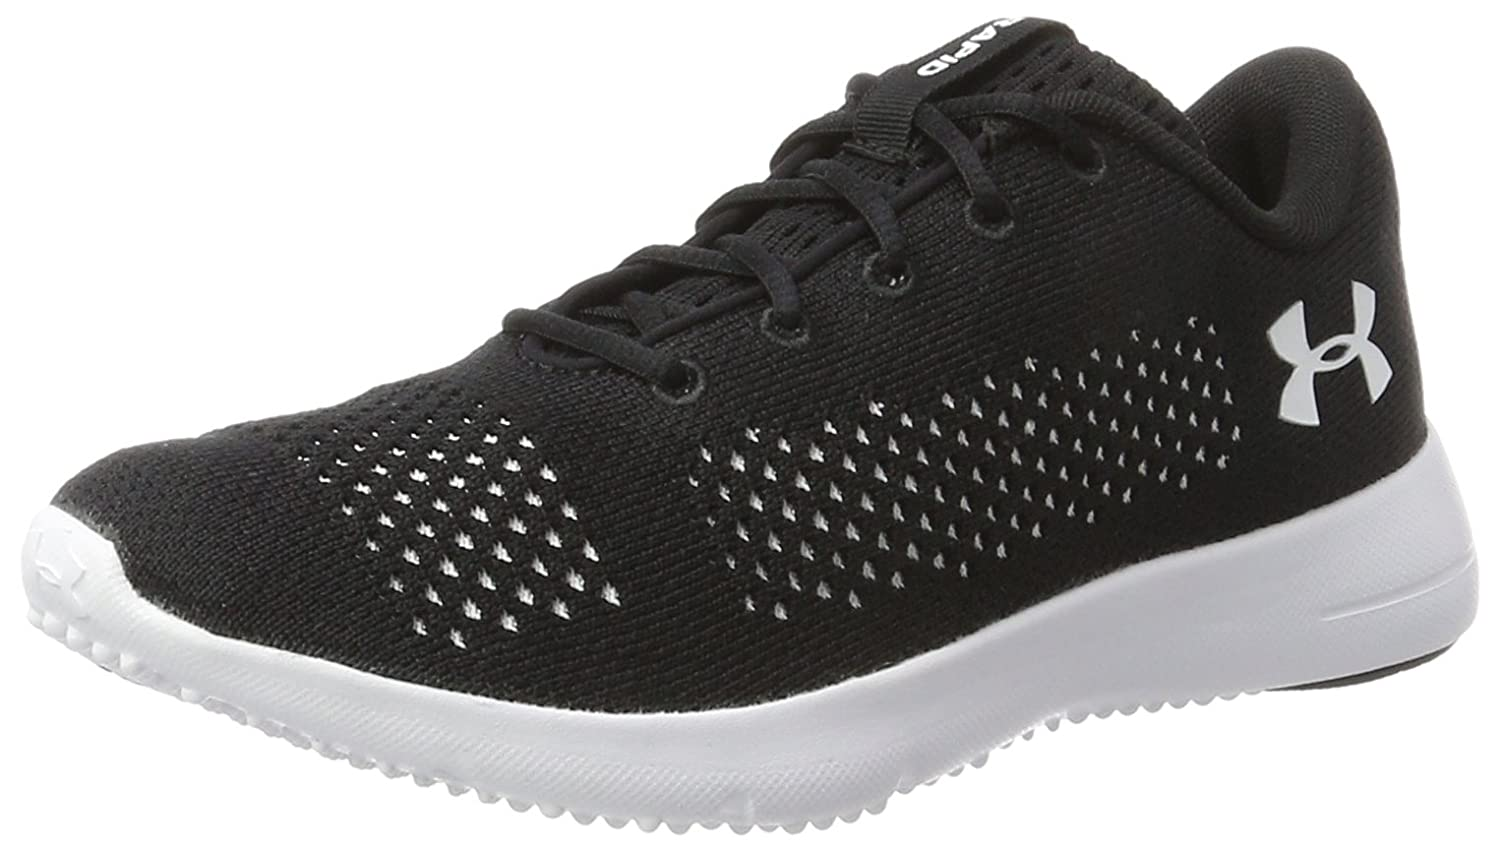 TALLA 37.5 EU. Under Armour UA W Rapid, Zapatillas de Running para Mujer